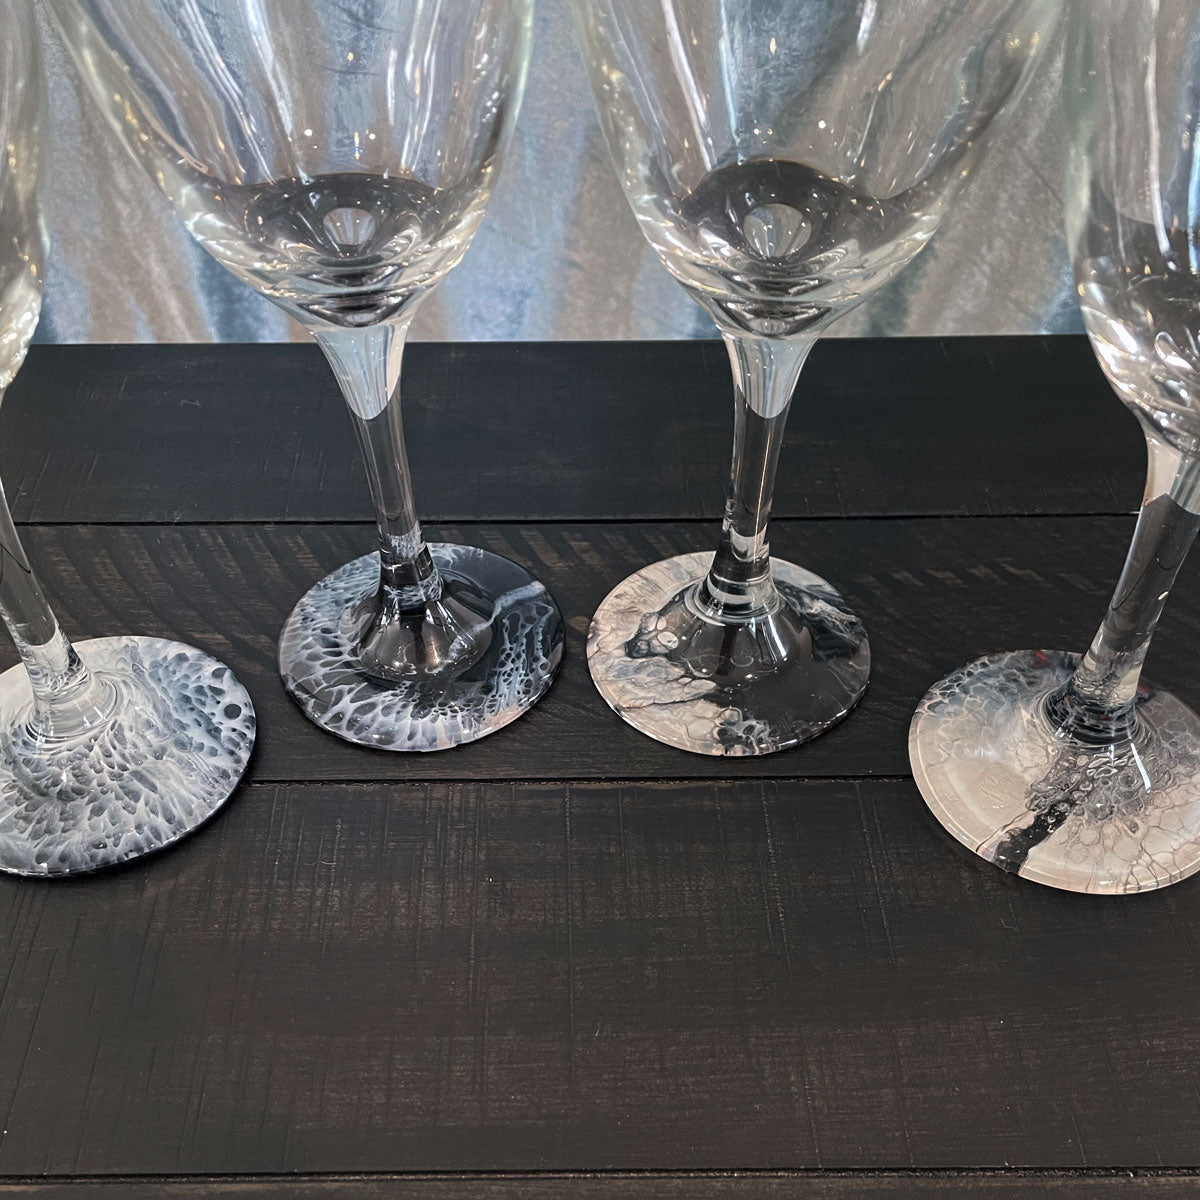 Hand-painted Wine Glasses - Dangerous - Ashley Lisl Art